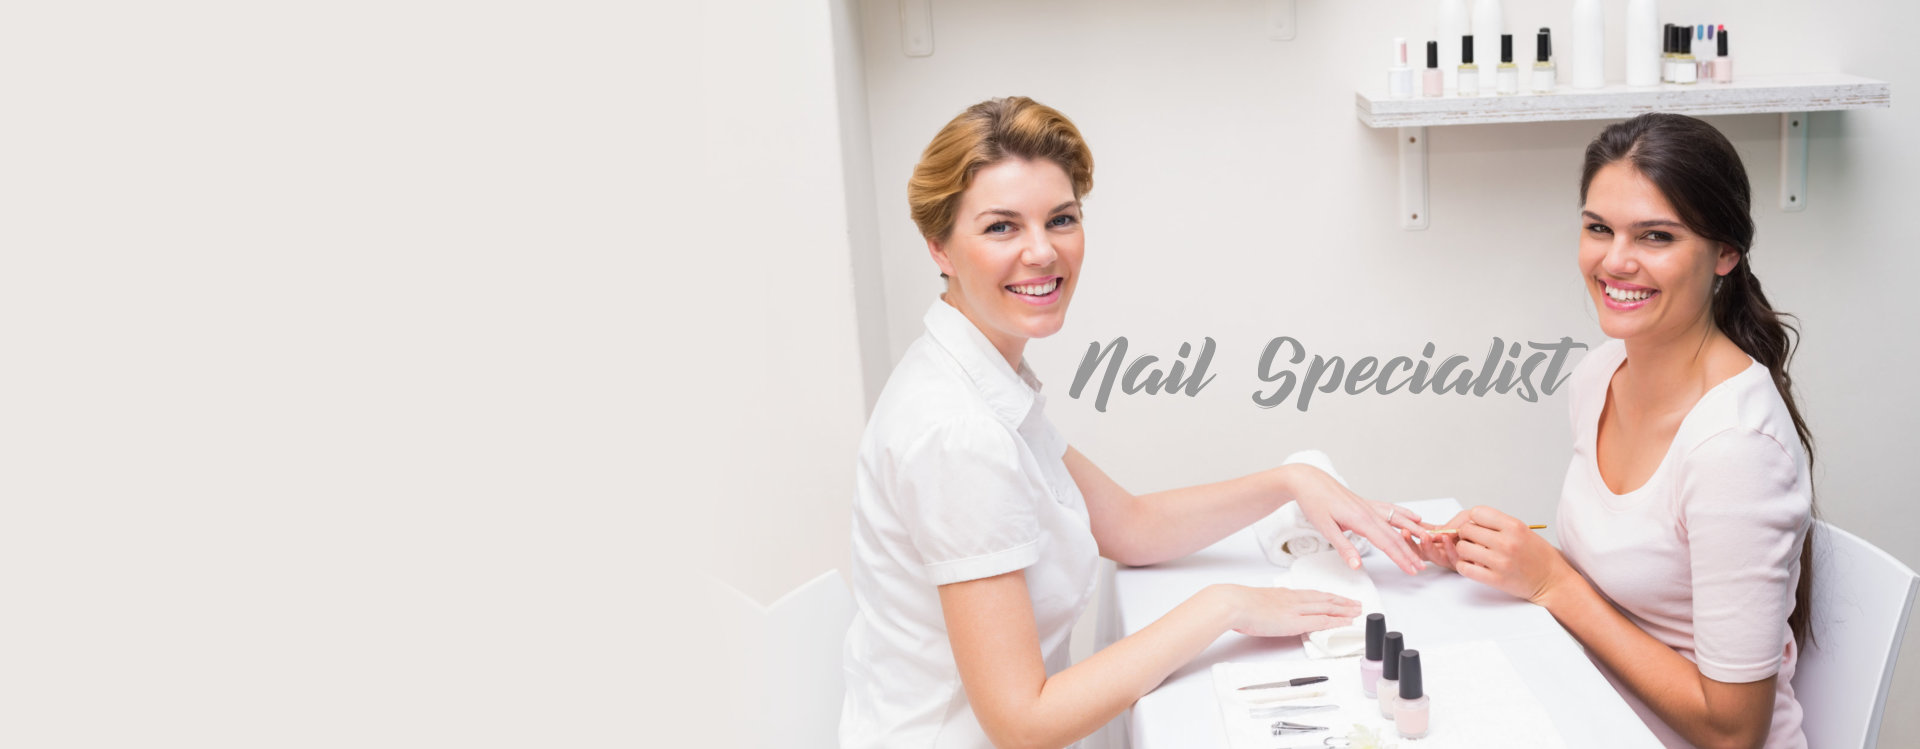 nail specialist taking care of the finger nails of adult woman